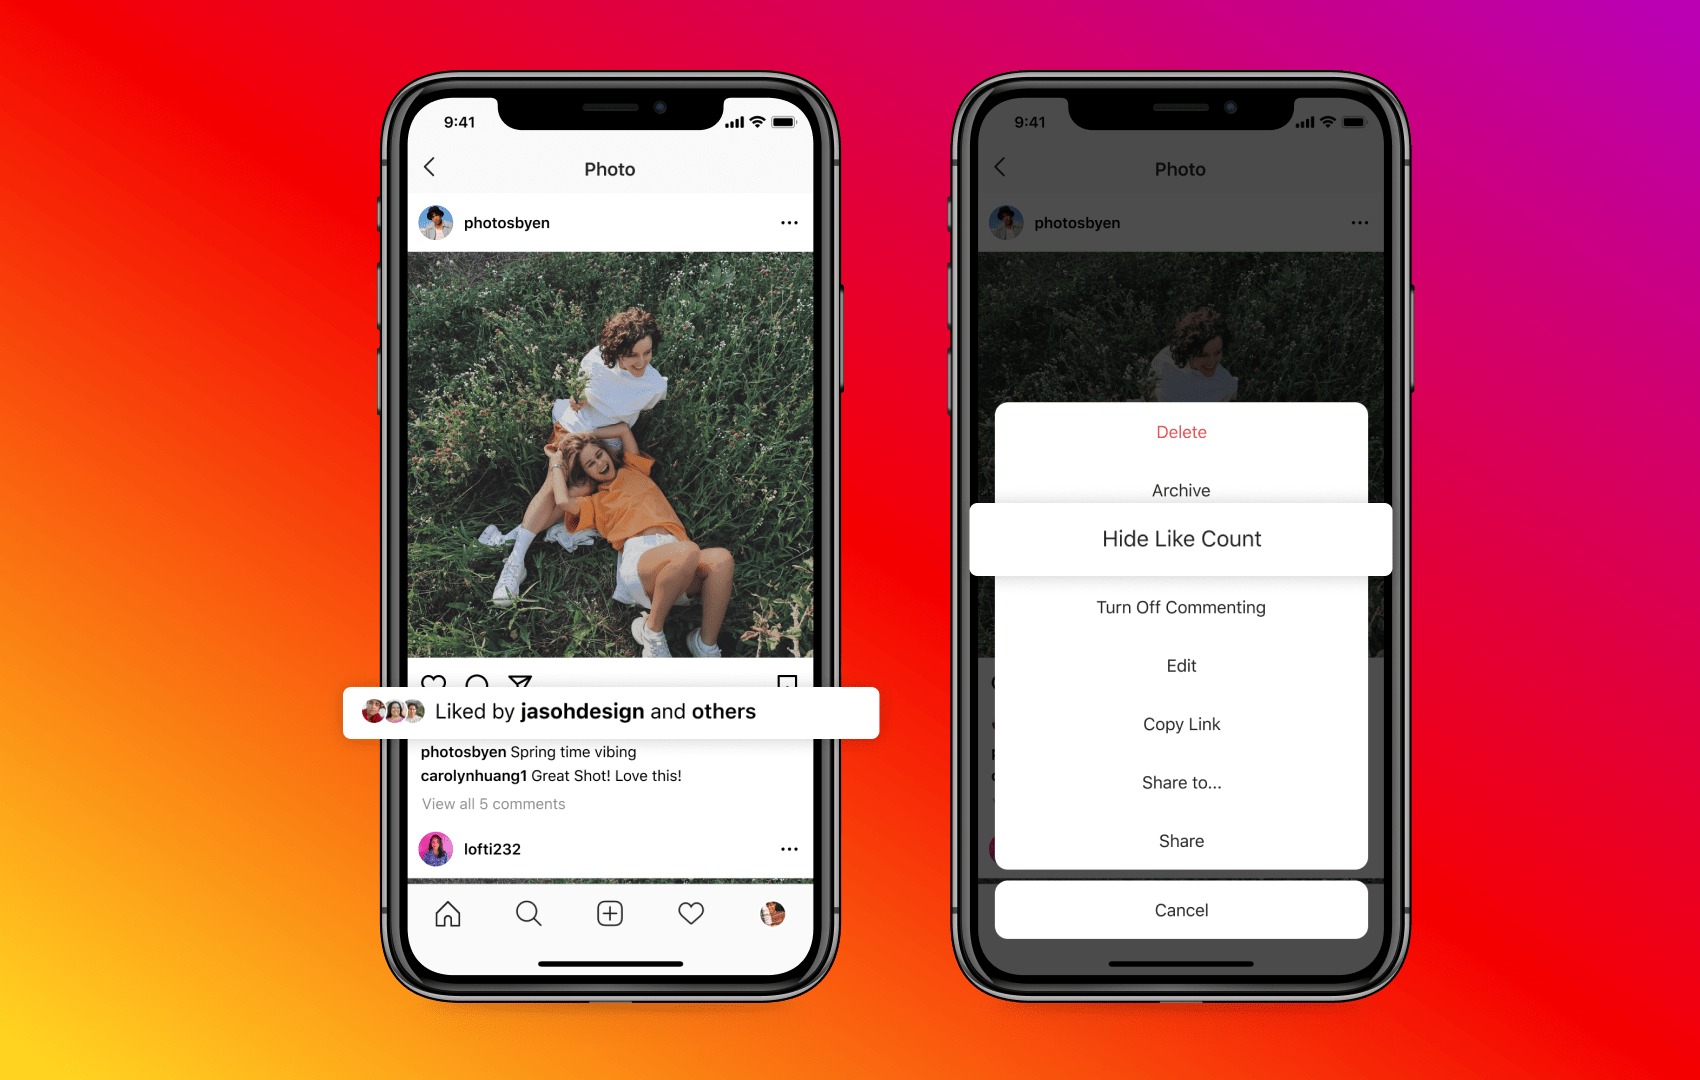 A promotional image from Instagram showing the Hide Like Count option for a user's own post in the iPhone app